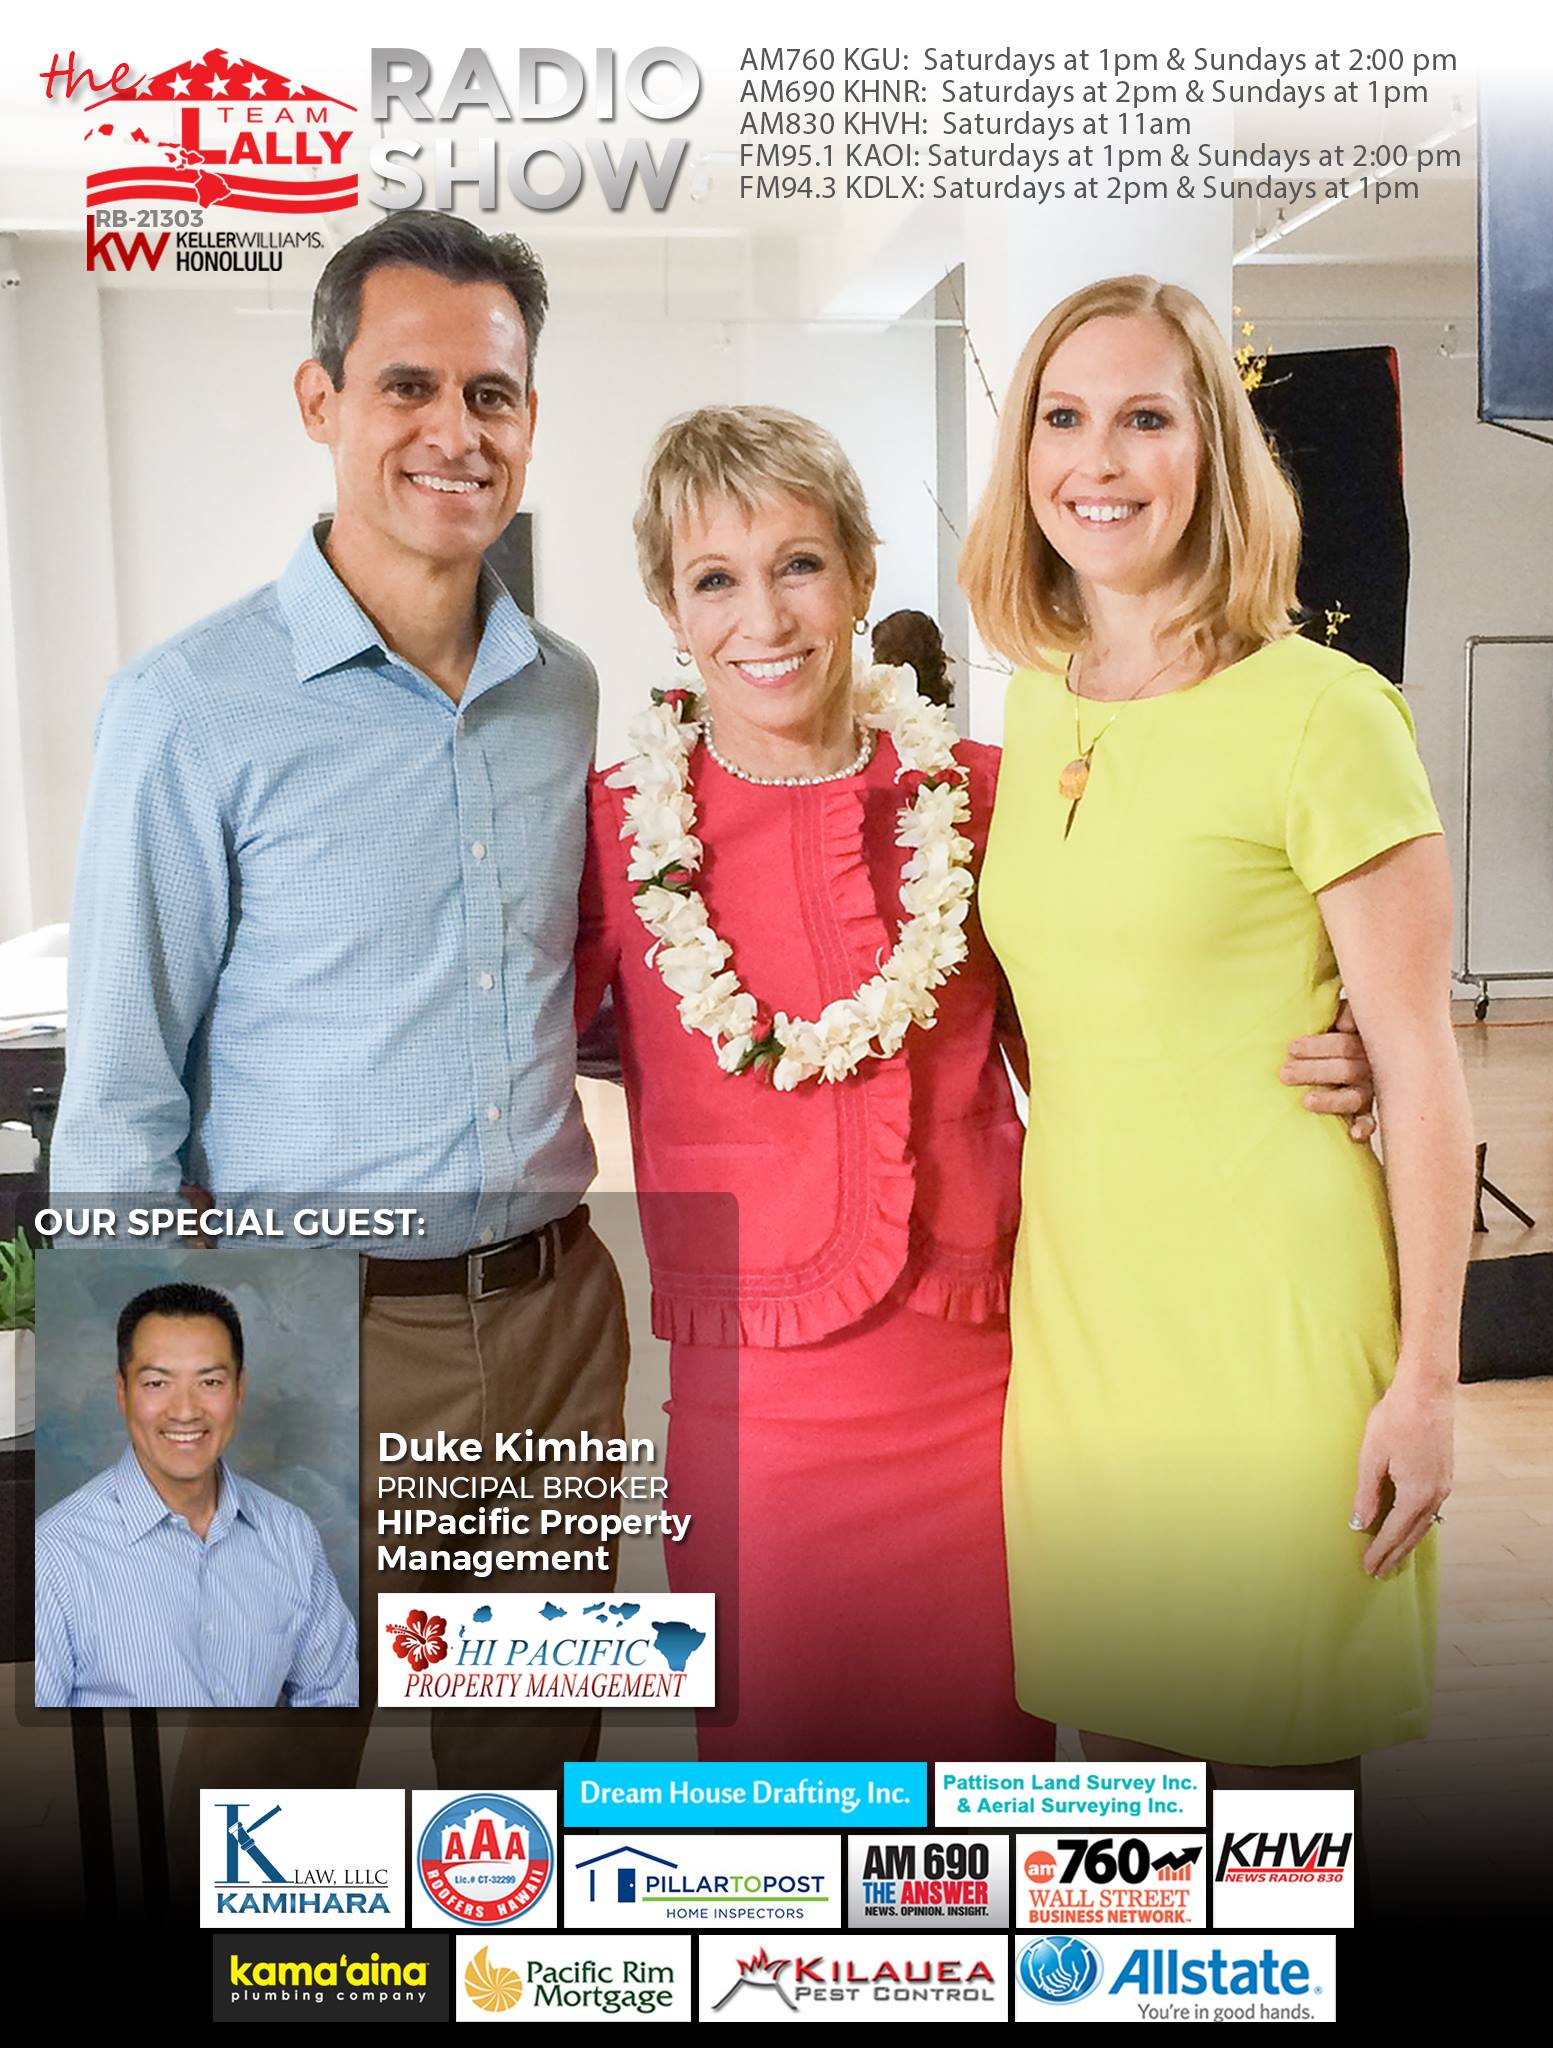 Managing property in Hawaii with HI Pacific Property Management